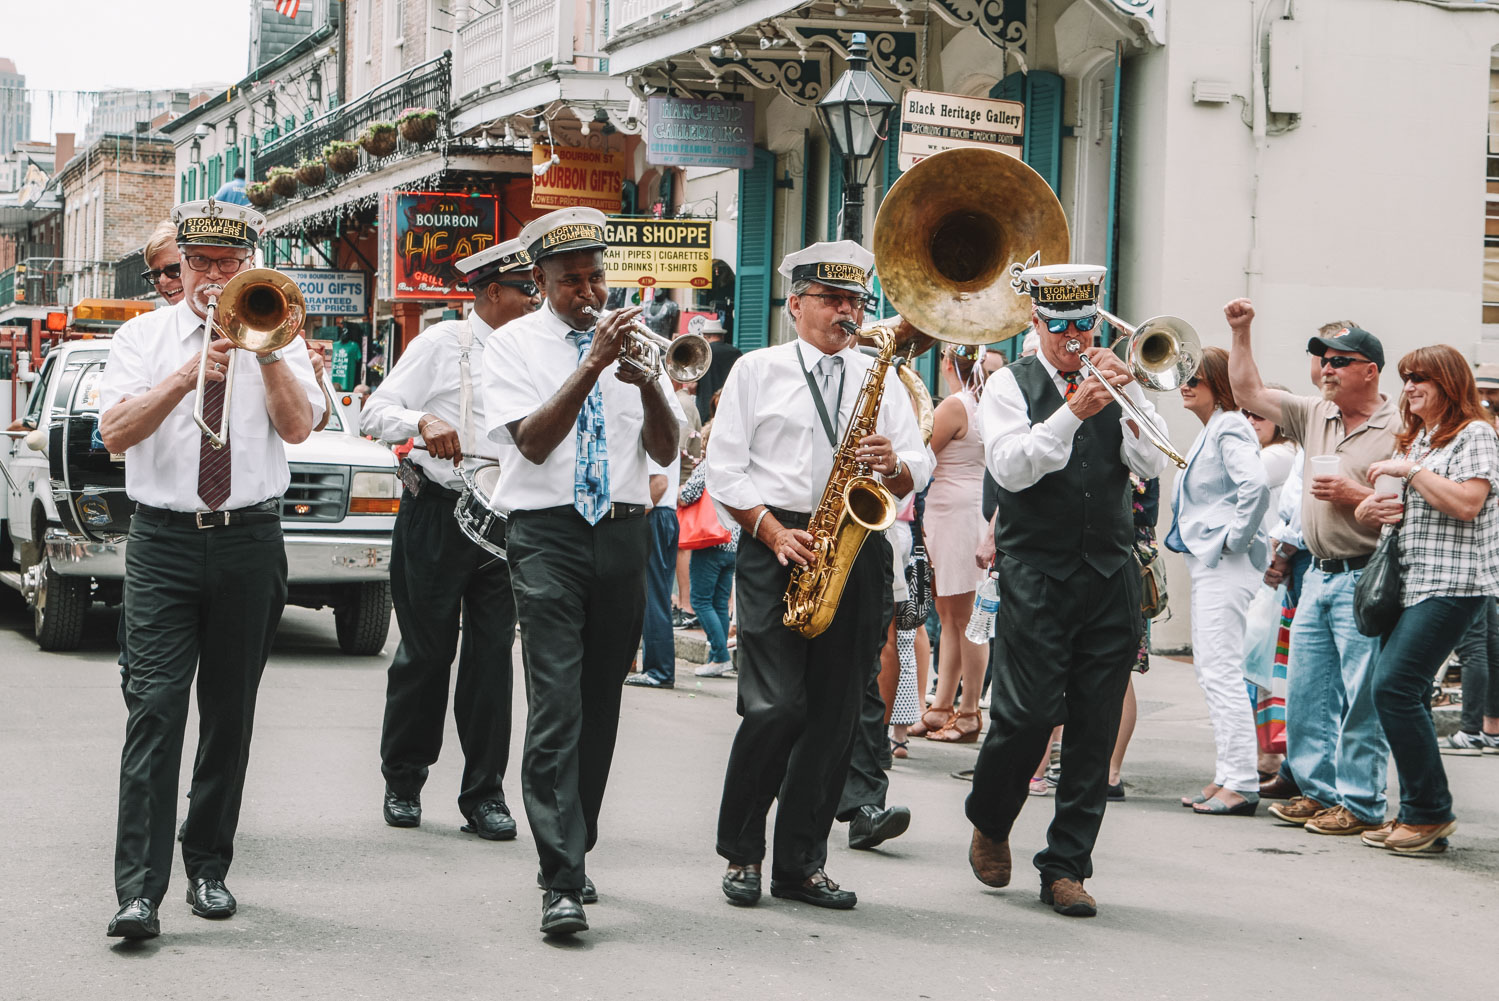 New Orleans Louisiana 2nd line jazz band